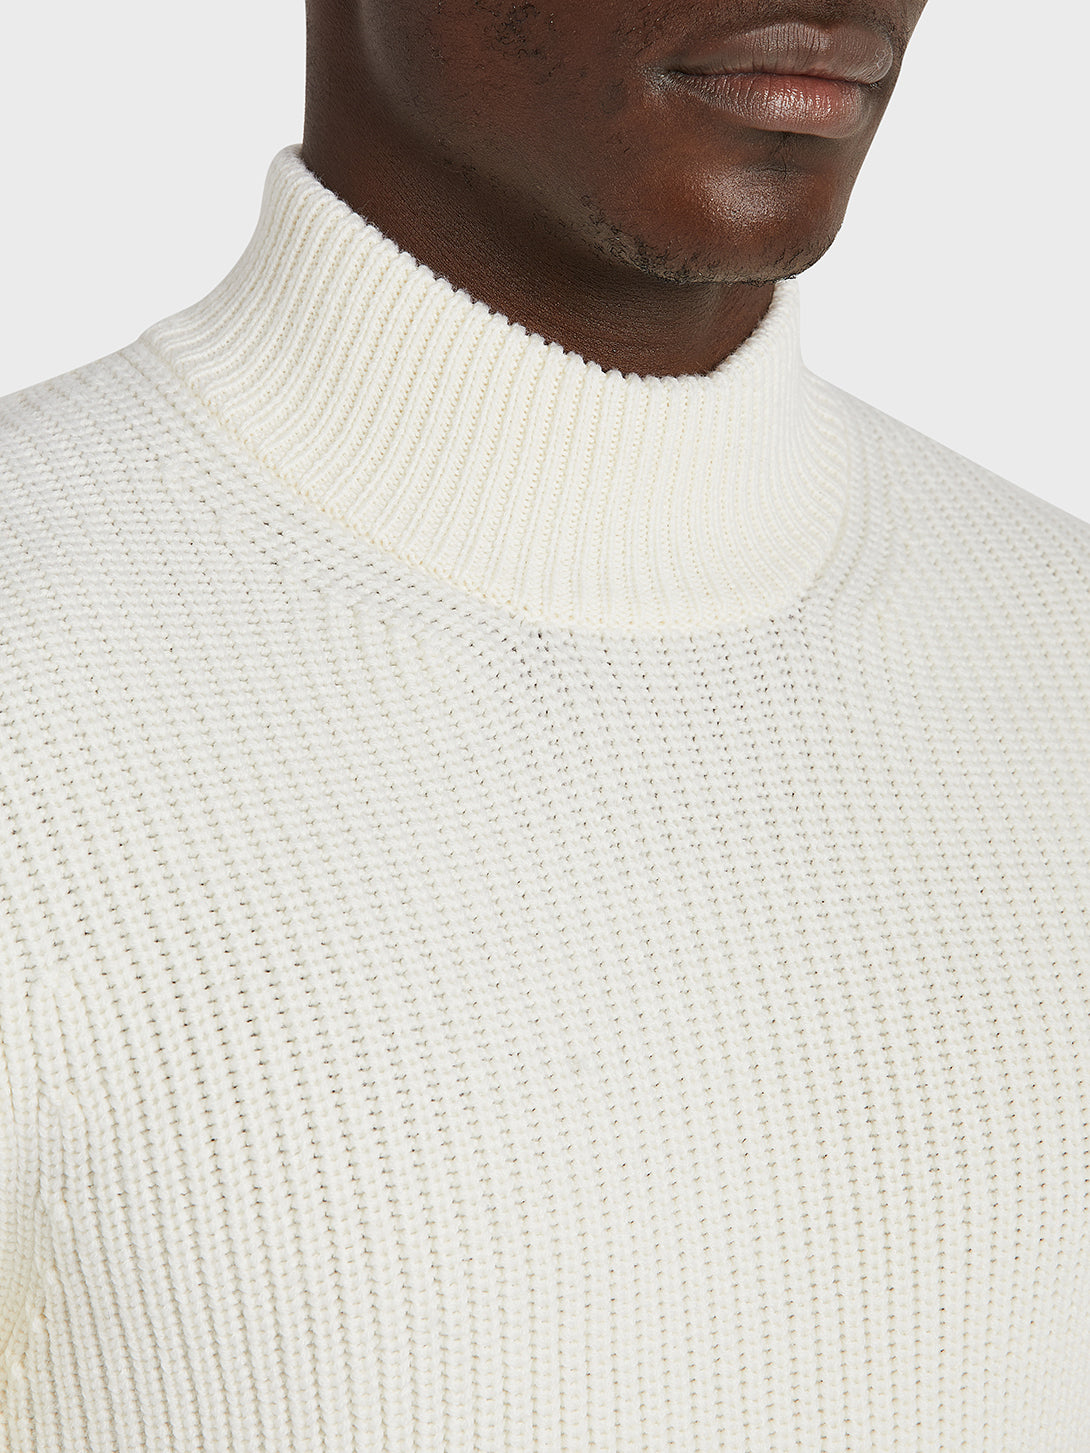 black friday deals ONS Clothing Men's Acton Mock Neck Sweater in OFF WHITE